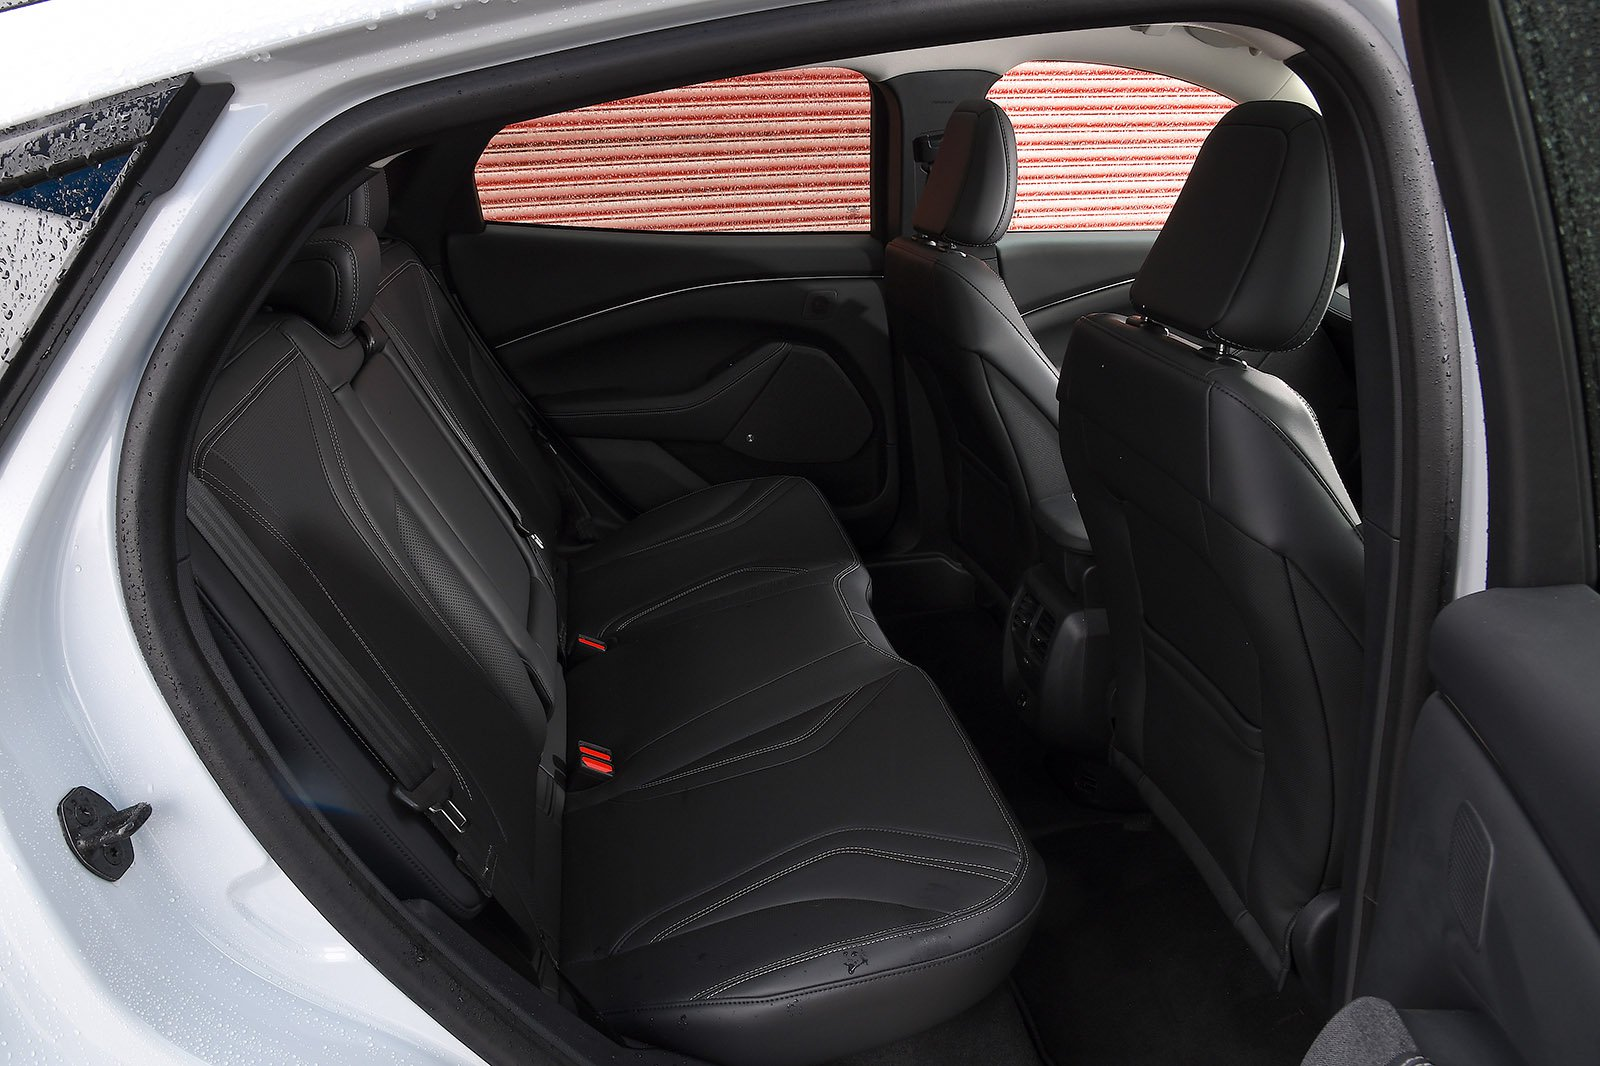 Ford Mustang Mach-E RWD 2021 interior